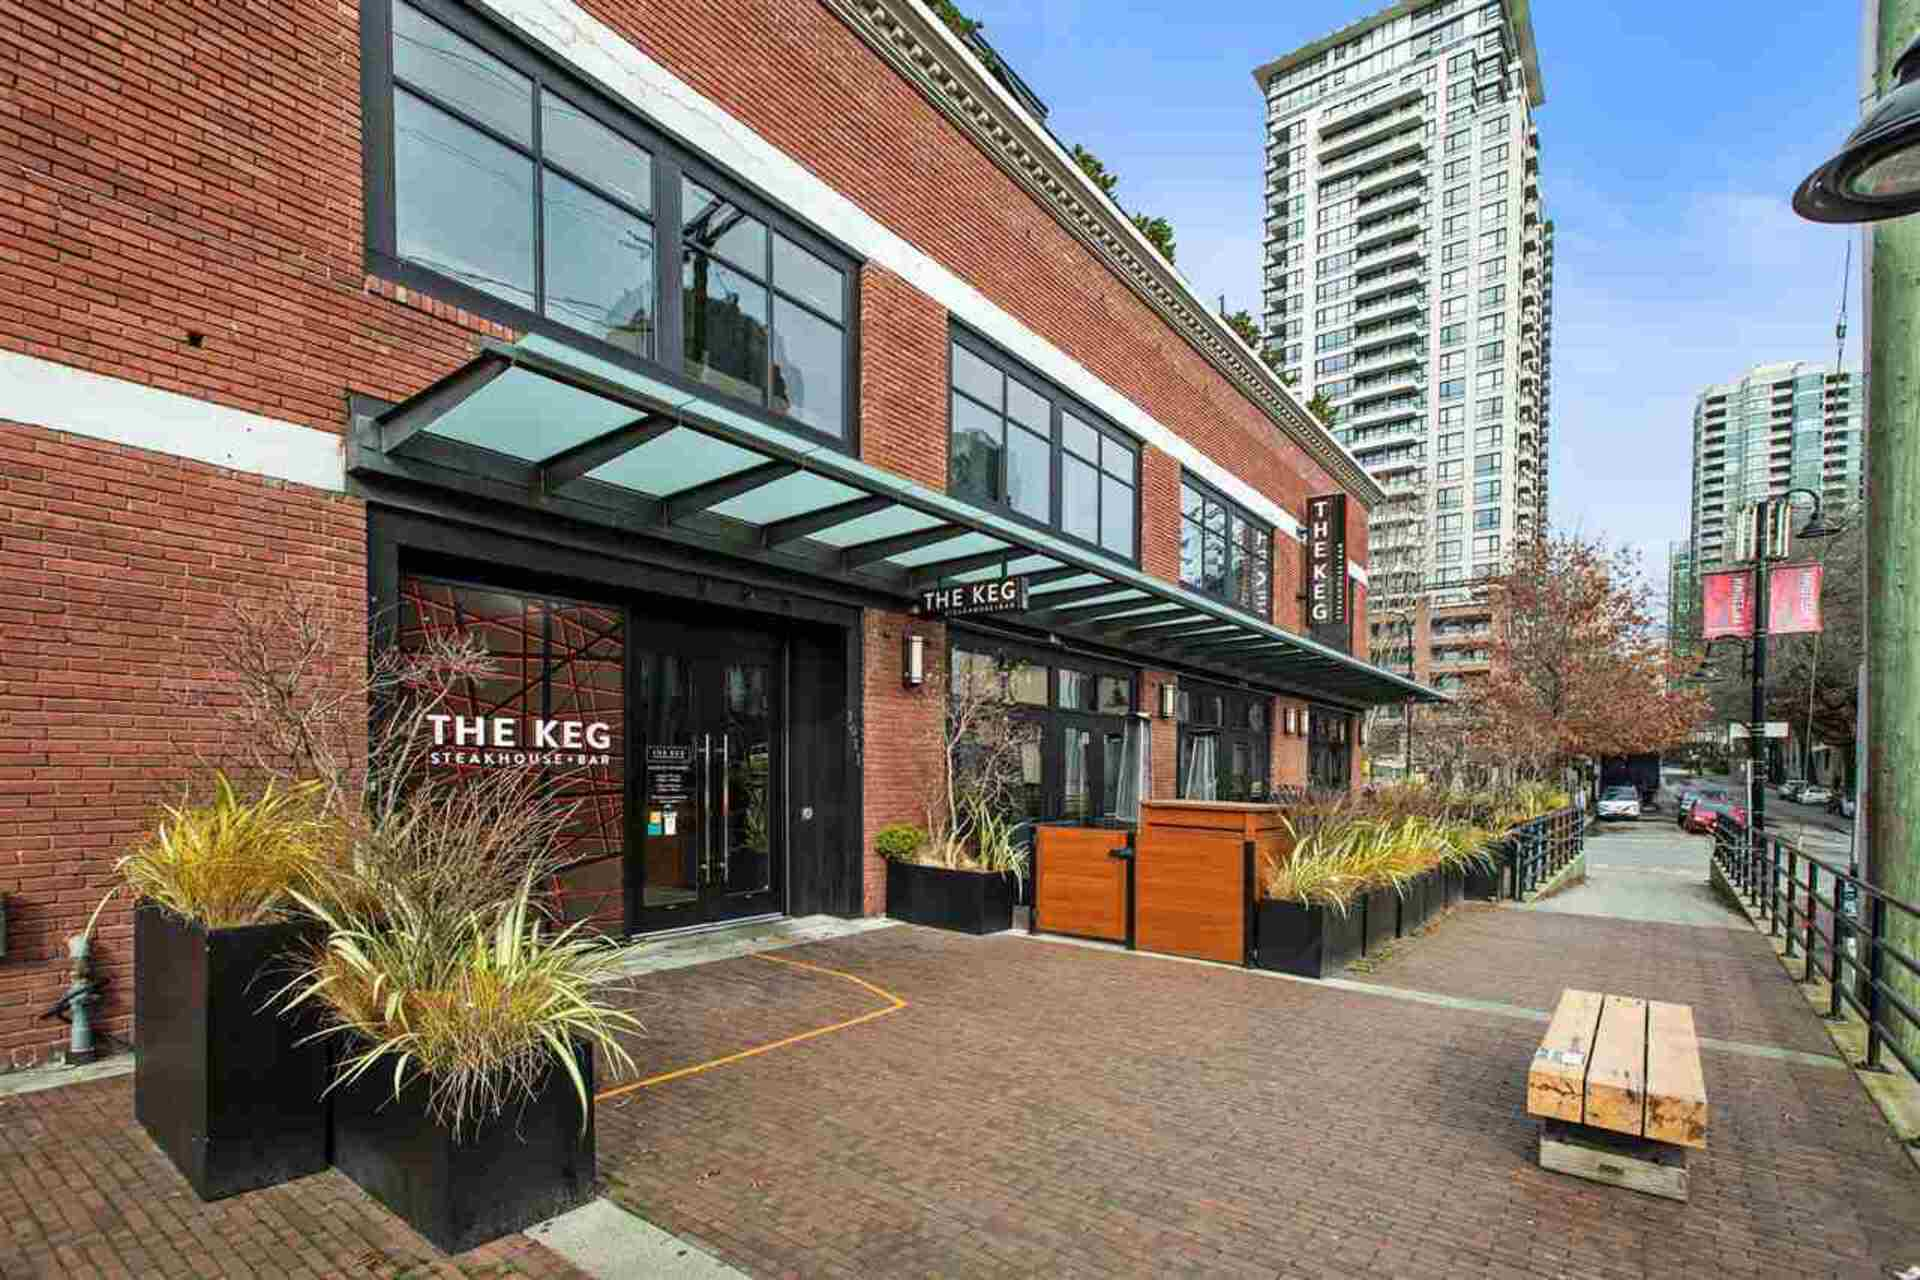 928-beatty-street-yaletown-vancouver-west-18 of 809 - 928 Beatty Street, Yaletown, Vancouver West